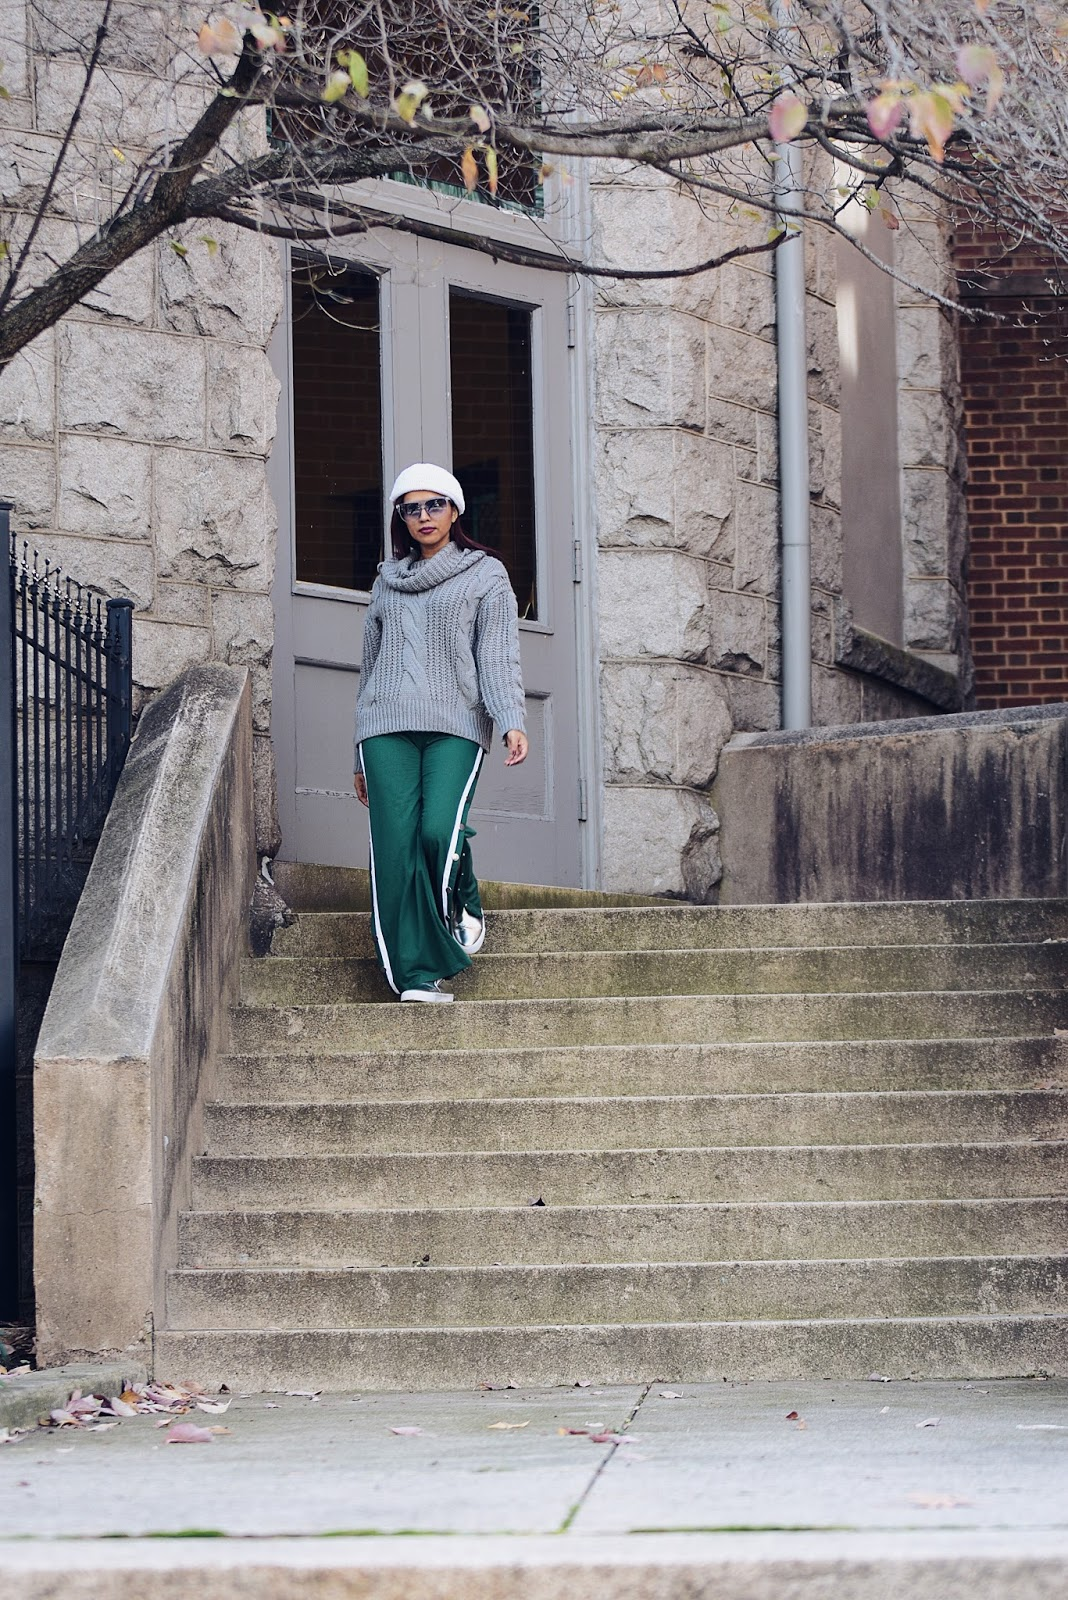 Sporty Chic For Thanksgiving -los chuchis-mariestilotravels-sporty pants-hoodie bi color-moda el salvador-dcblogger-fashionblogger-streetstyle-acción de gracias-visit richmond-virginia is for lovers-visit virginia-los chuchis-cable sweater